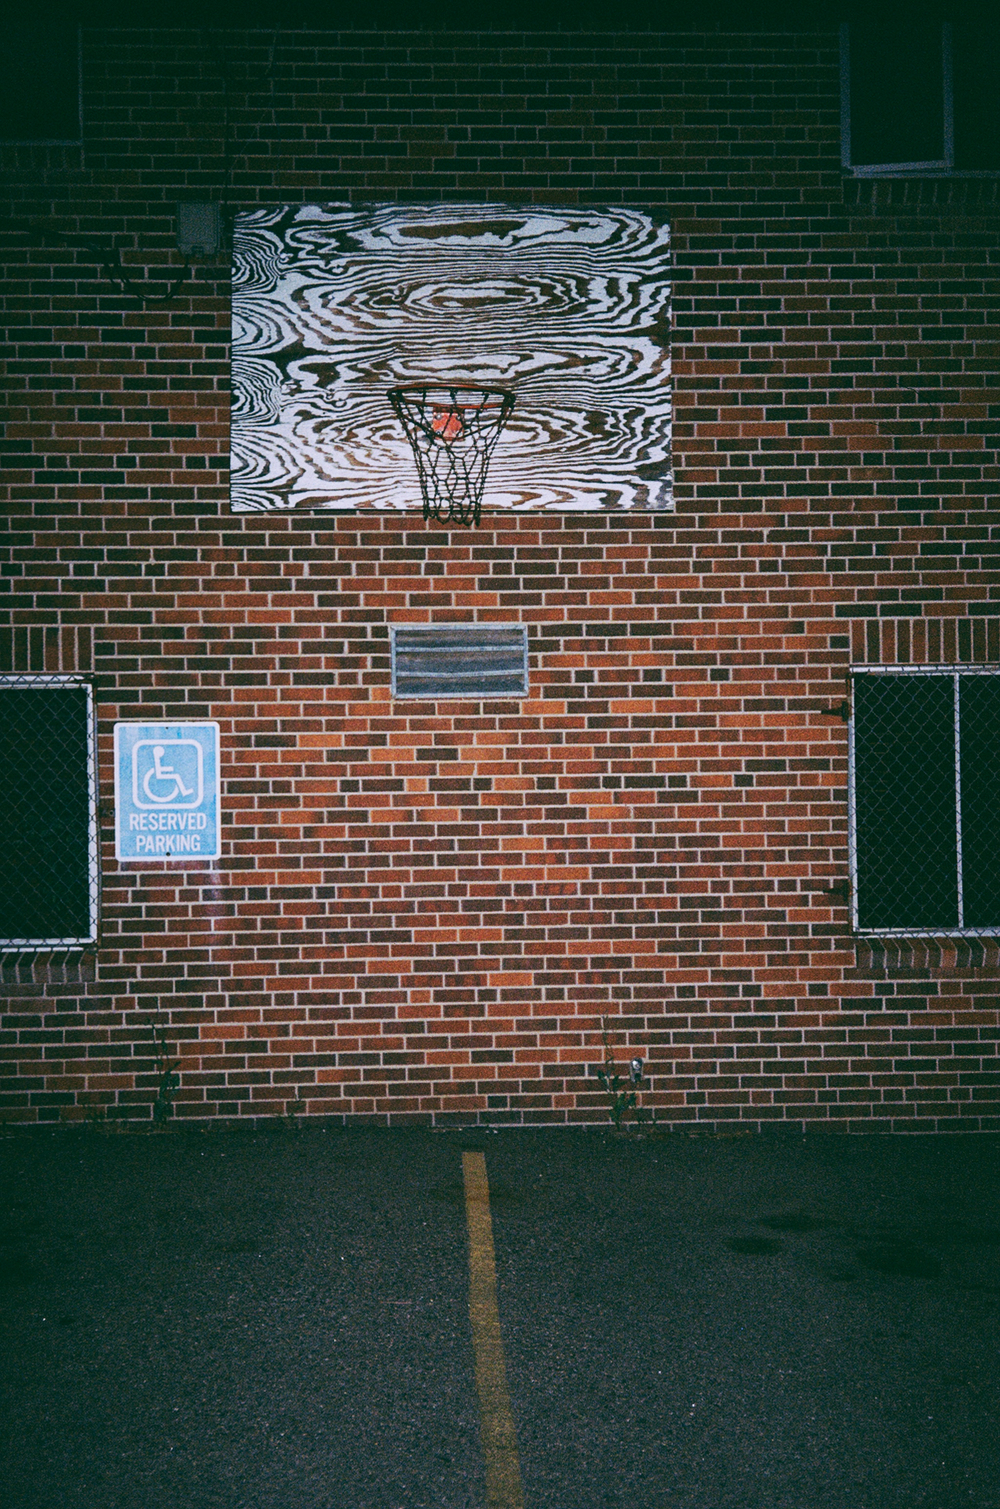 Church Basketball